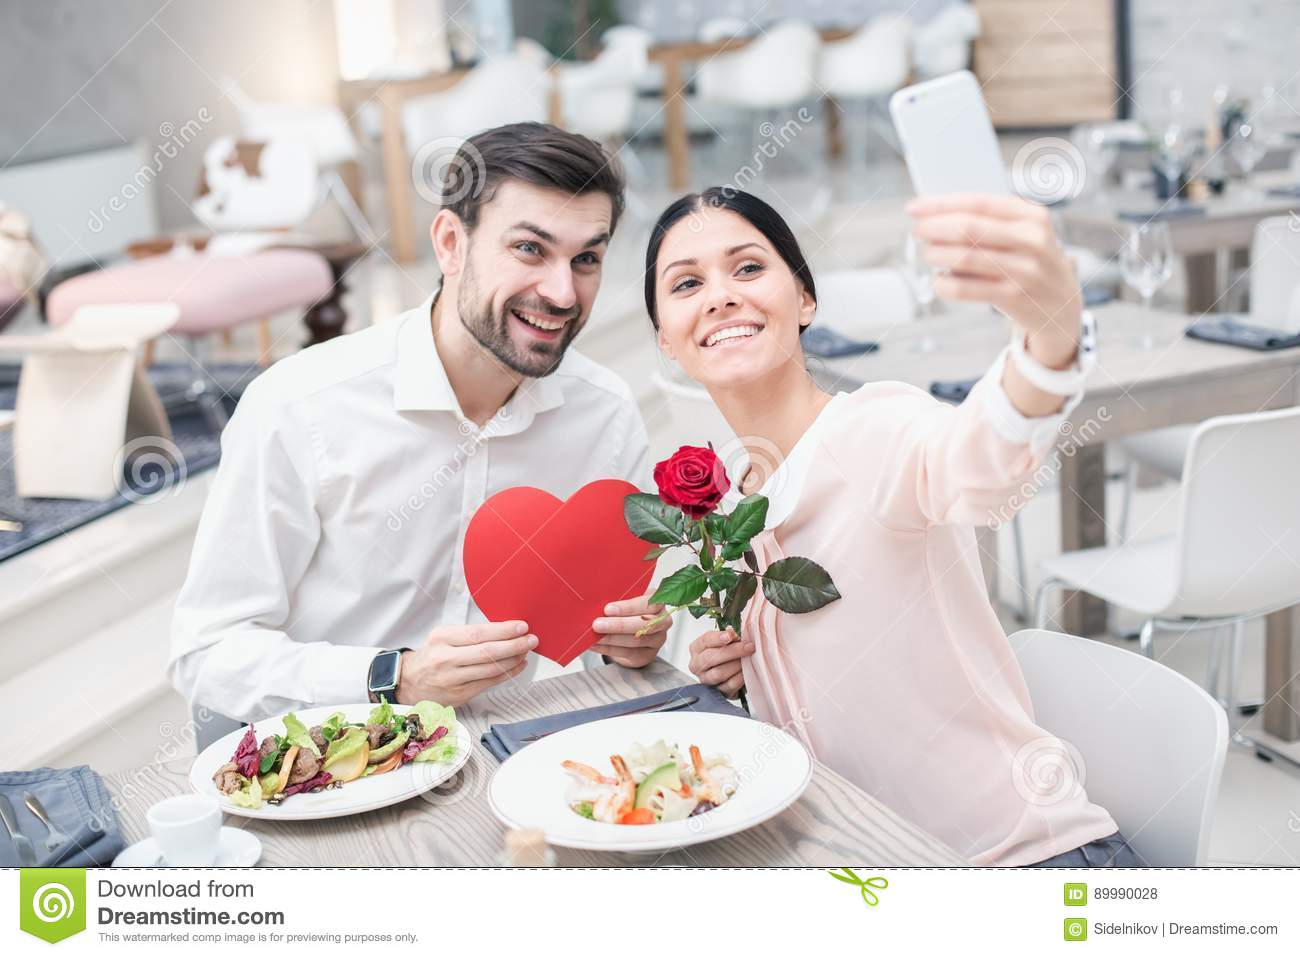 Romantic Date In Luxury Restaurant Stock Photo Image Of Dating Lifestyle 89990028